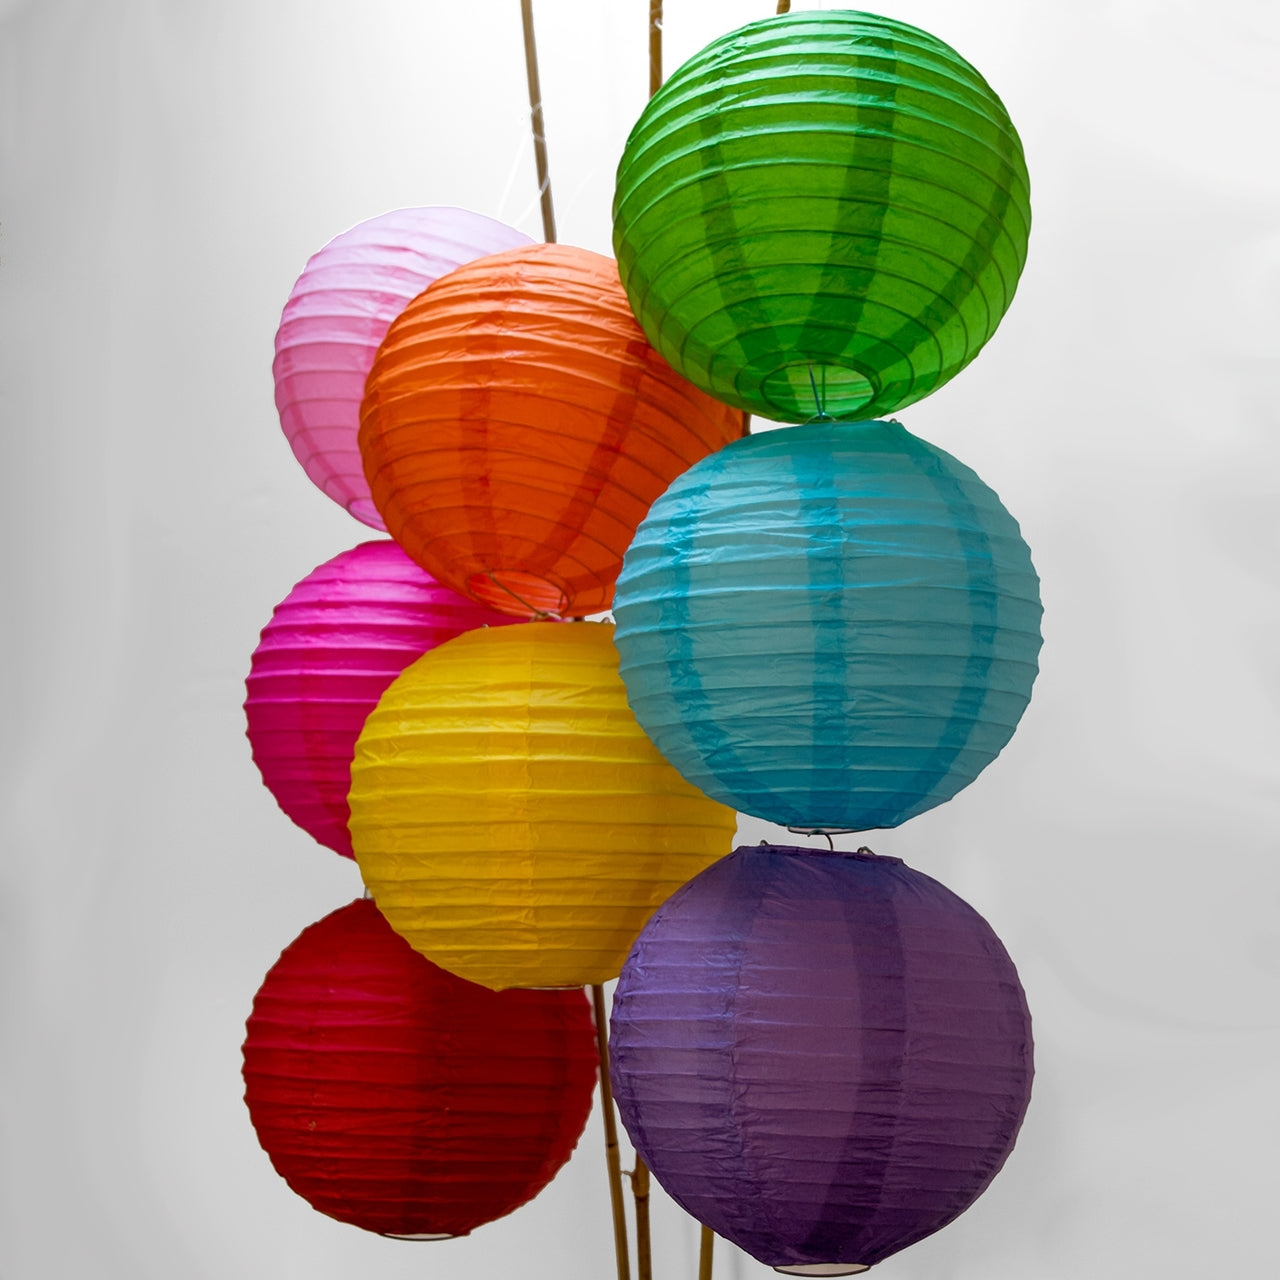 BLOWOUT 8-Pack of 10 Inch Multicolor No Frills Paper Lanterns - Even Ribbing